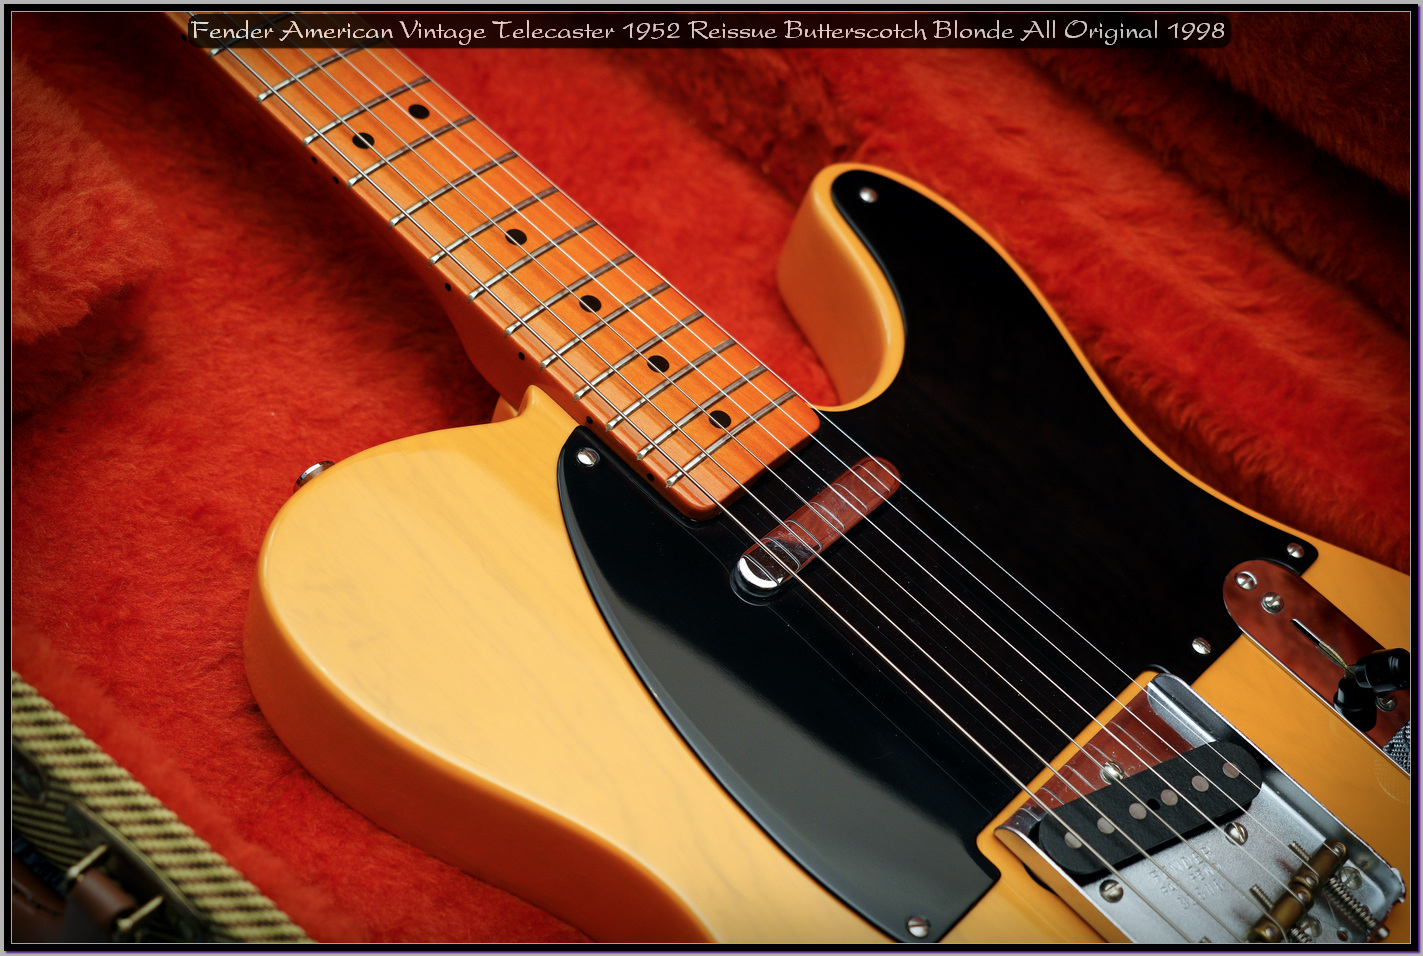 Fender American Vintage Telecaster 1952 Reissue Butterscotch Blonde All Original 1998 14_x1440.jpg